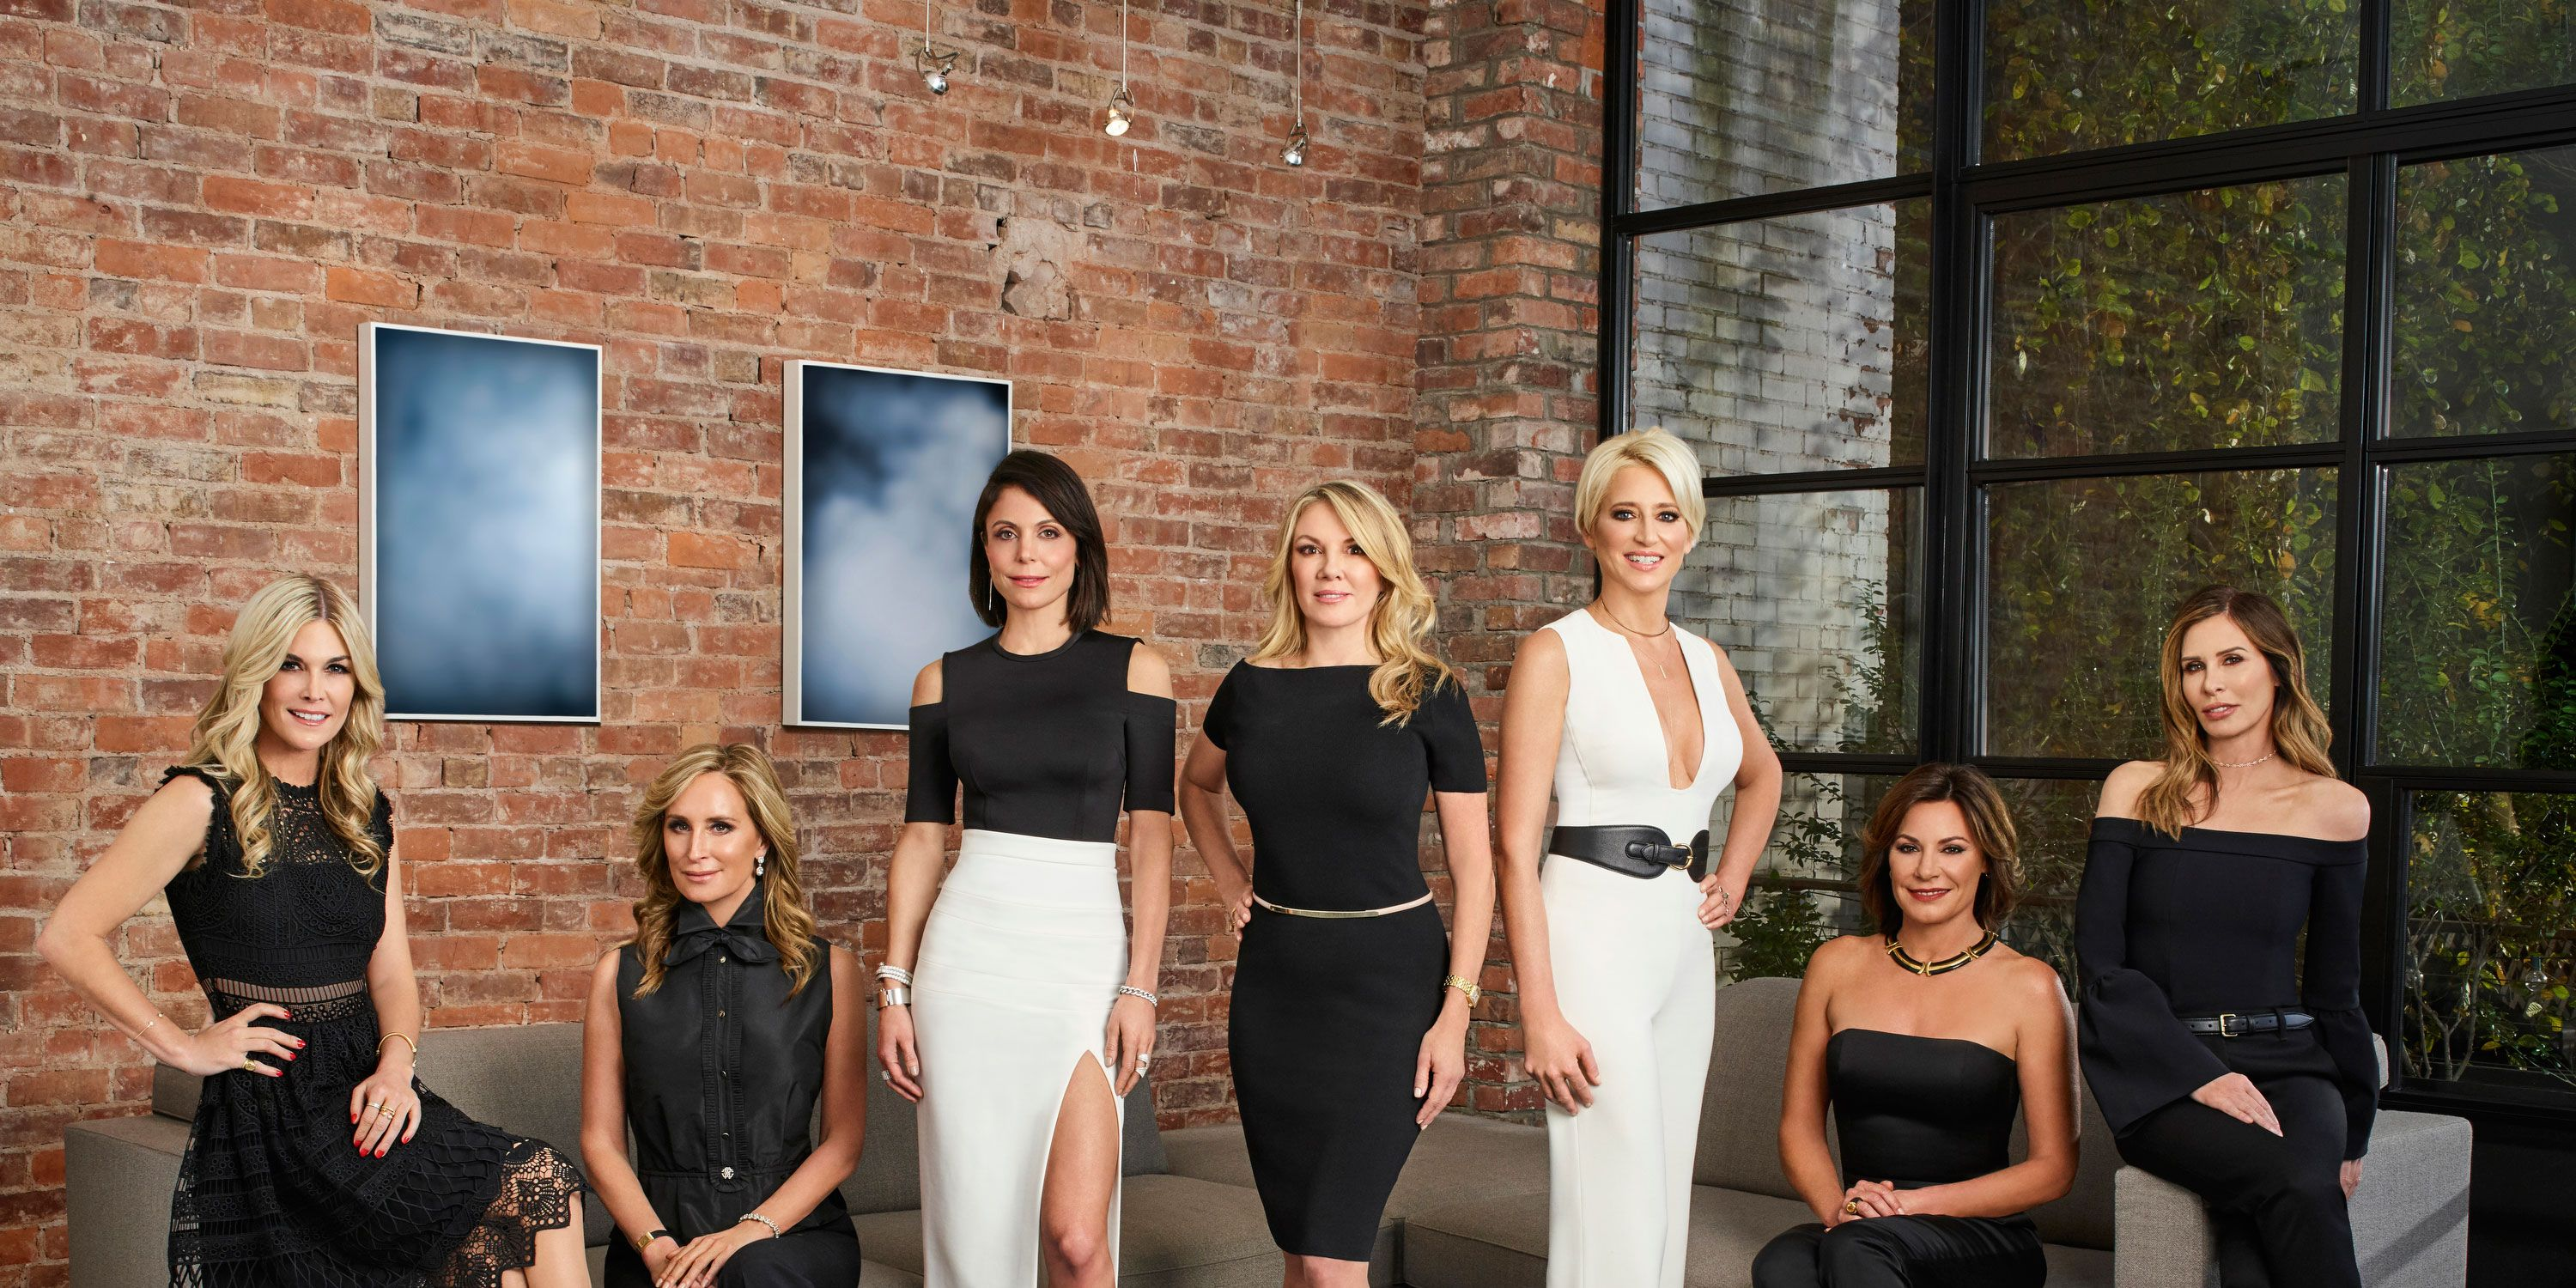 Season 9 cast of the Real Housewives of New York City: Tinsley Mortimer, Sonja Morgan, Bethenny Frankel, Ramona Singer, Dorinda Medley, Luann D'Agostino, and Carole Radziwill.